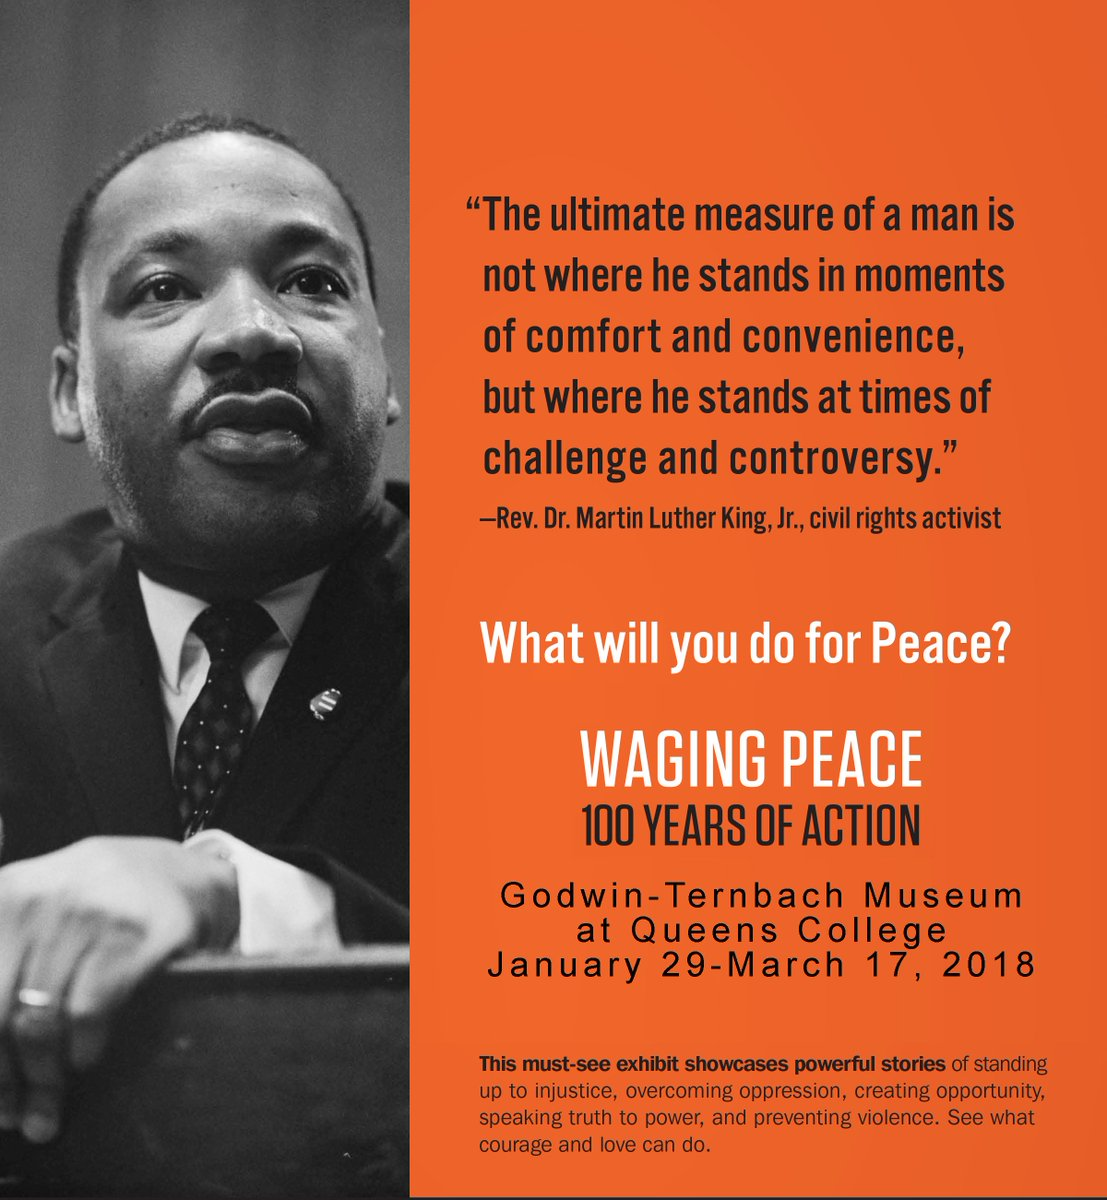 Personal stories of #nonviolentresistance showcased in the new @GodwinTernbach exhibition, Feb. 1 - March 17, including Martin Luther King Jr.&#39;s Letter from #Birmingham Jail. #DYK #MLK spoke at QC in 1965 on #peaceful resistance? #whatwillyoudoforpeace  http:// ht.ly/gHn130i03Pq  &nbsp;  <br>http://pic.twitter.com/v1Aq47dnSW